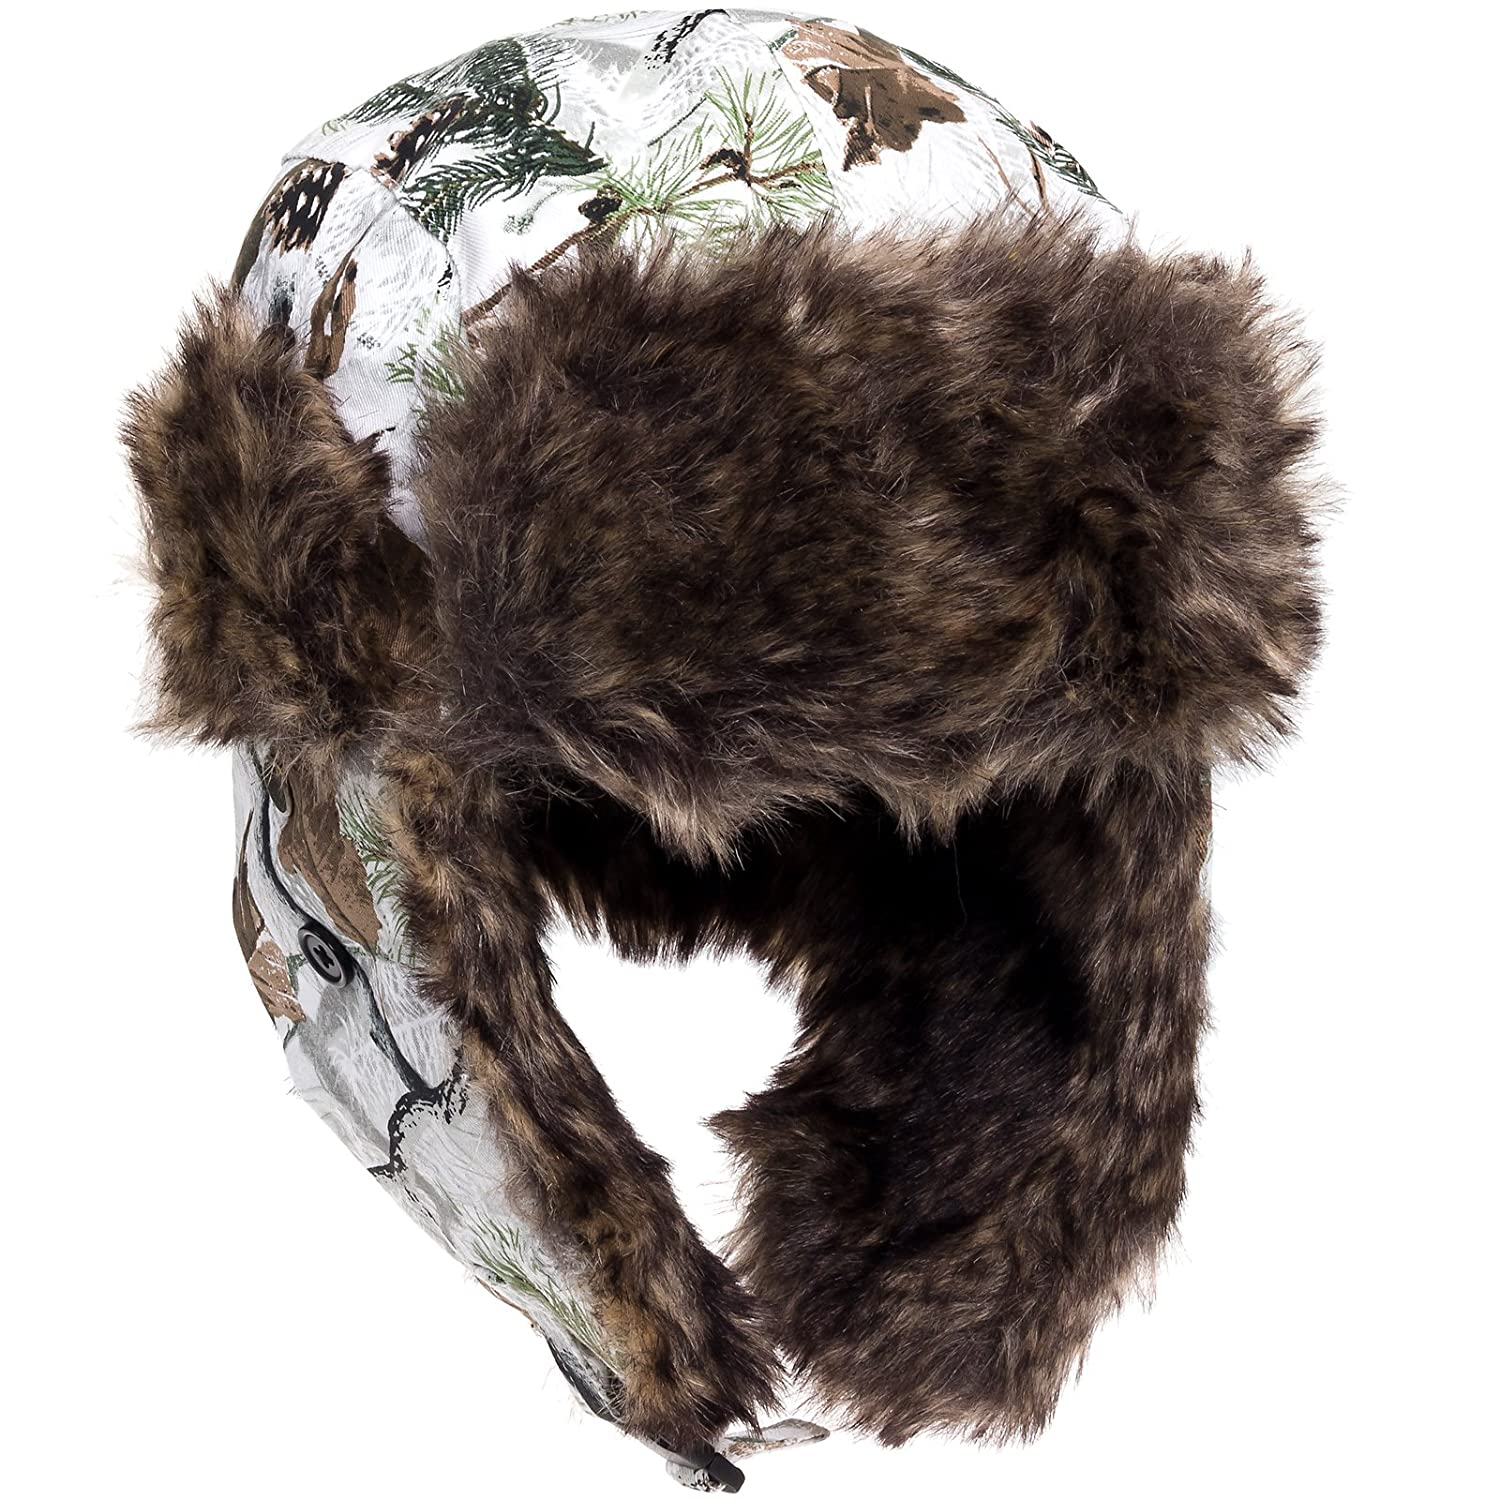 f82eee702ed80 Amazon.com  Dakota Dan Winter Trooper Hat White Snow Camo with White Rabbit  Faux Fur Trim - One Size Fits Most  Clothing